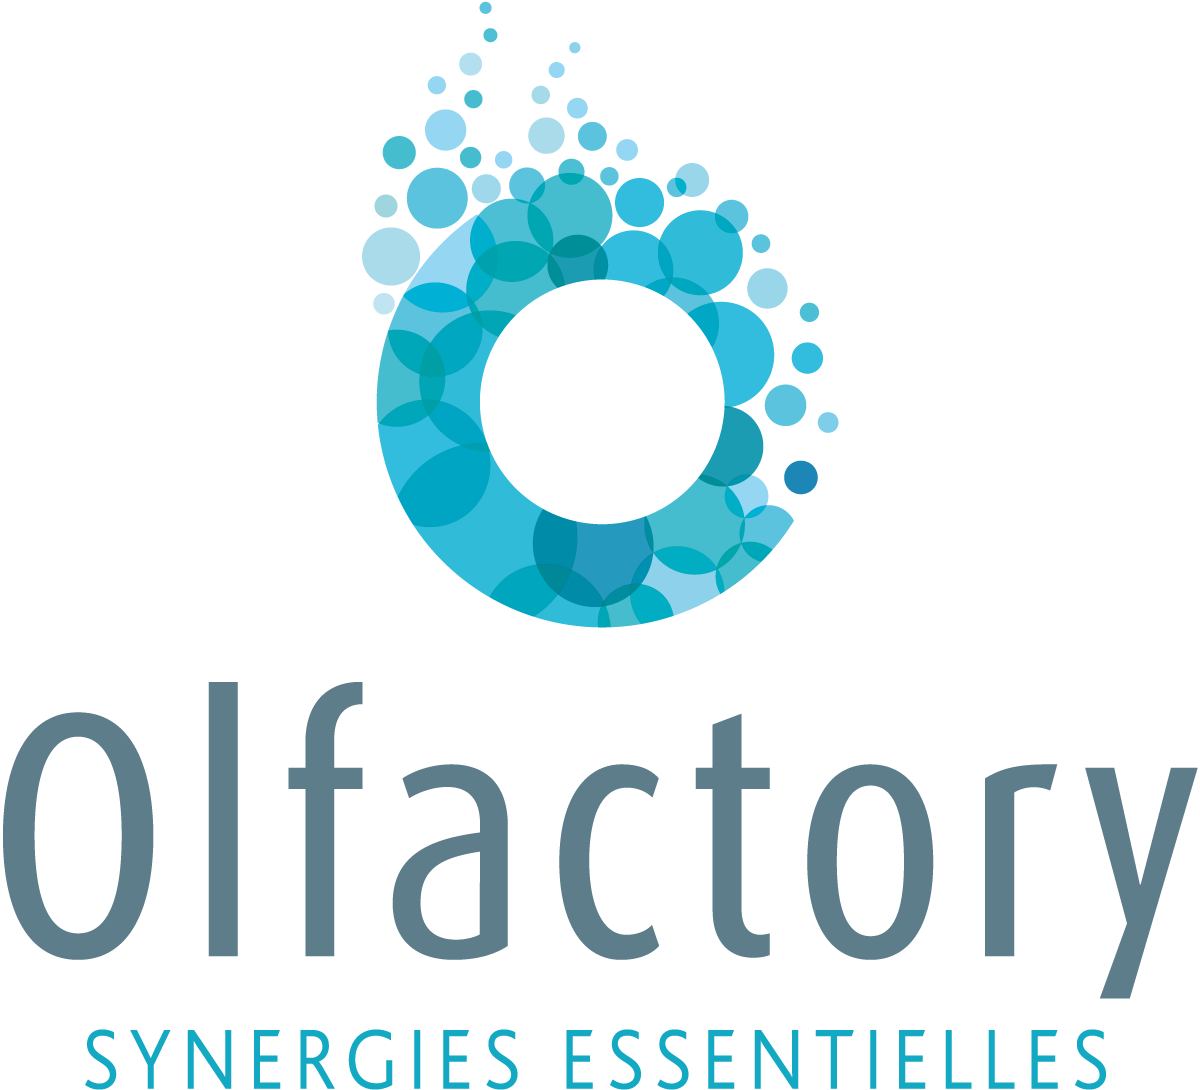 Olfactory, synergies essentielles